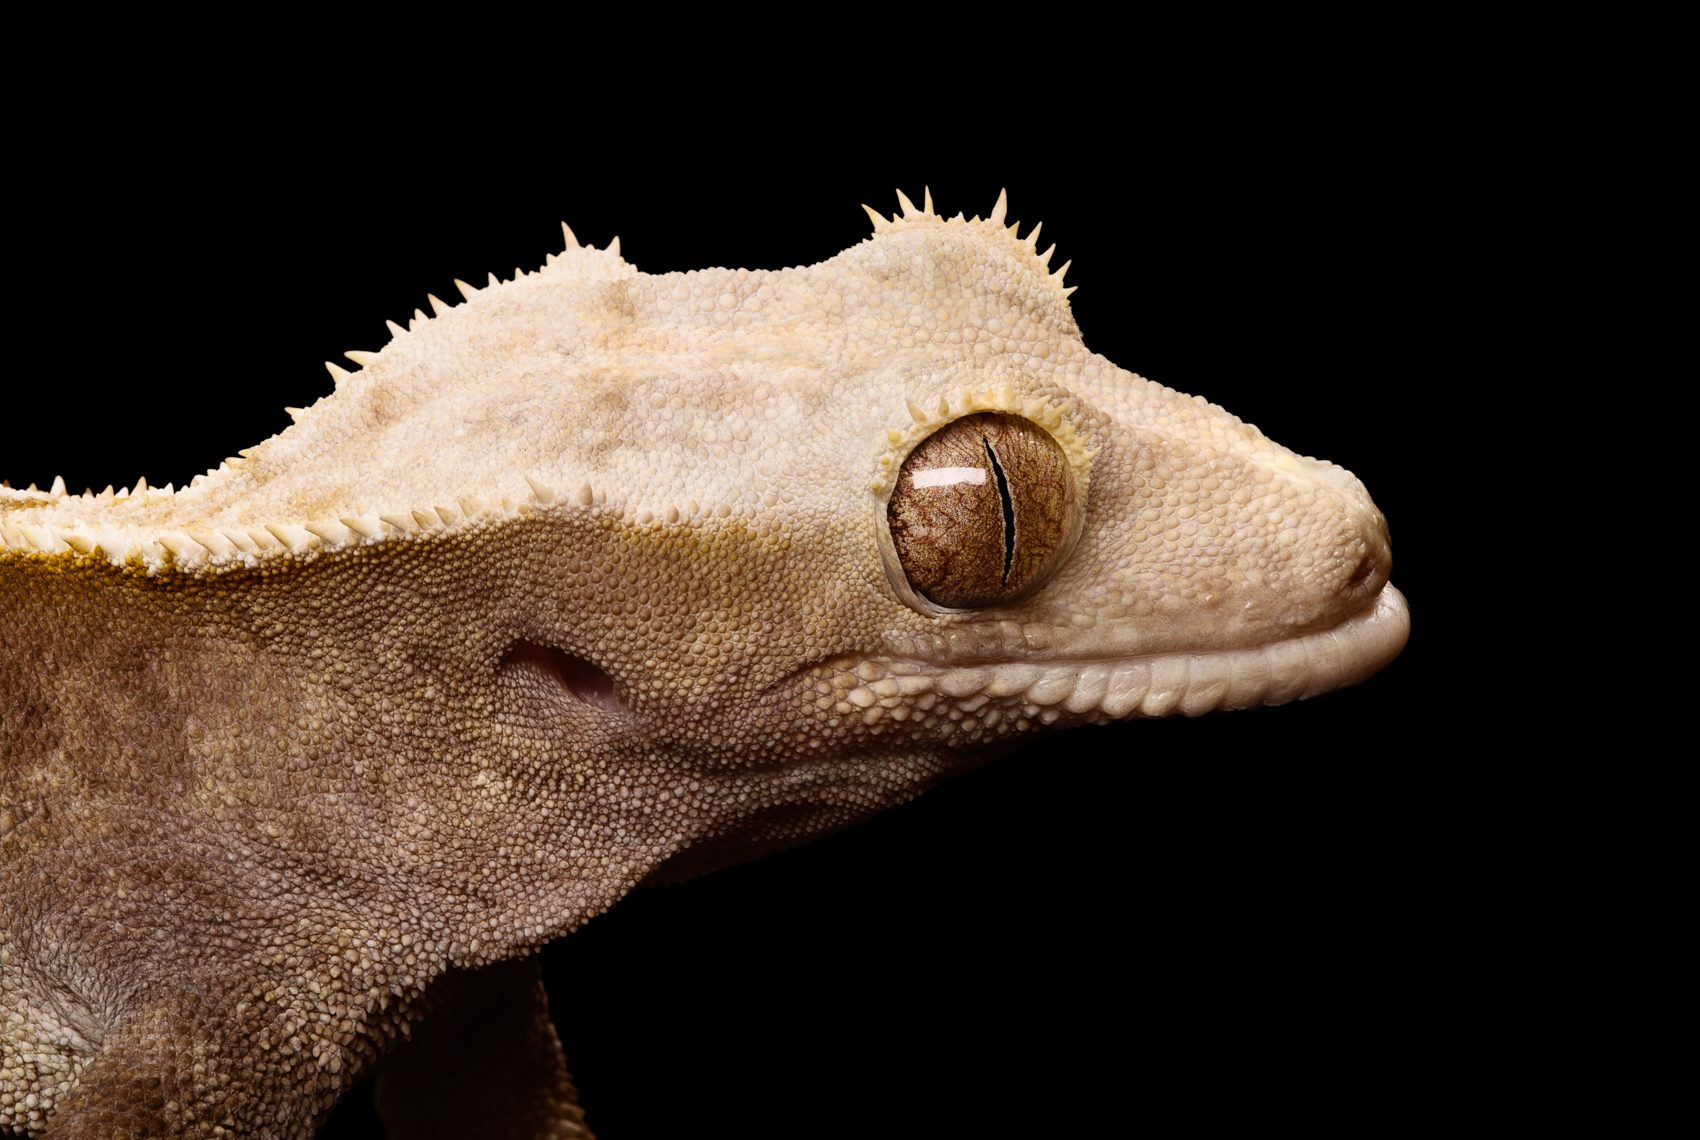 close up of Crested Gecko and detail of eye